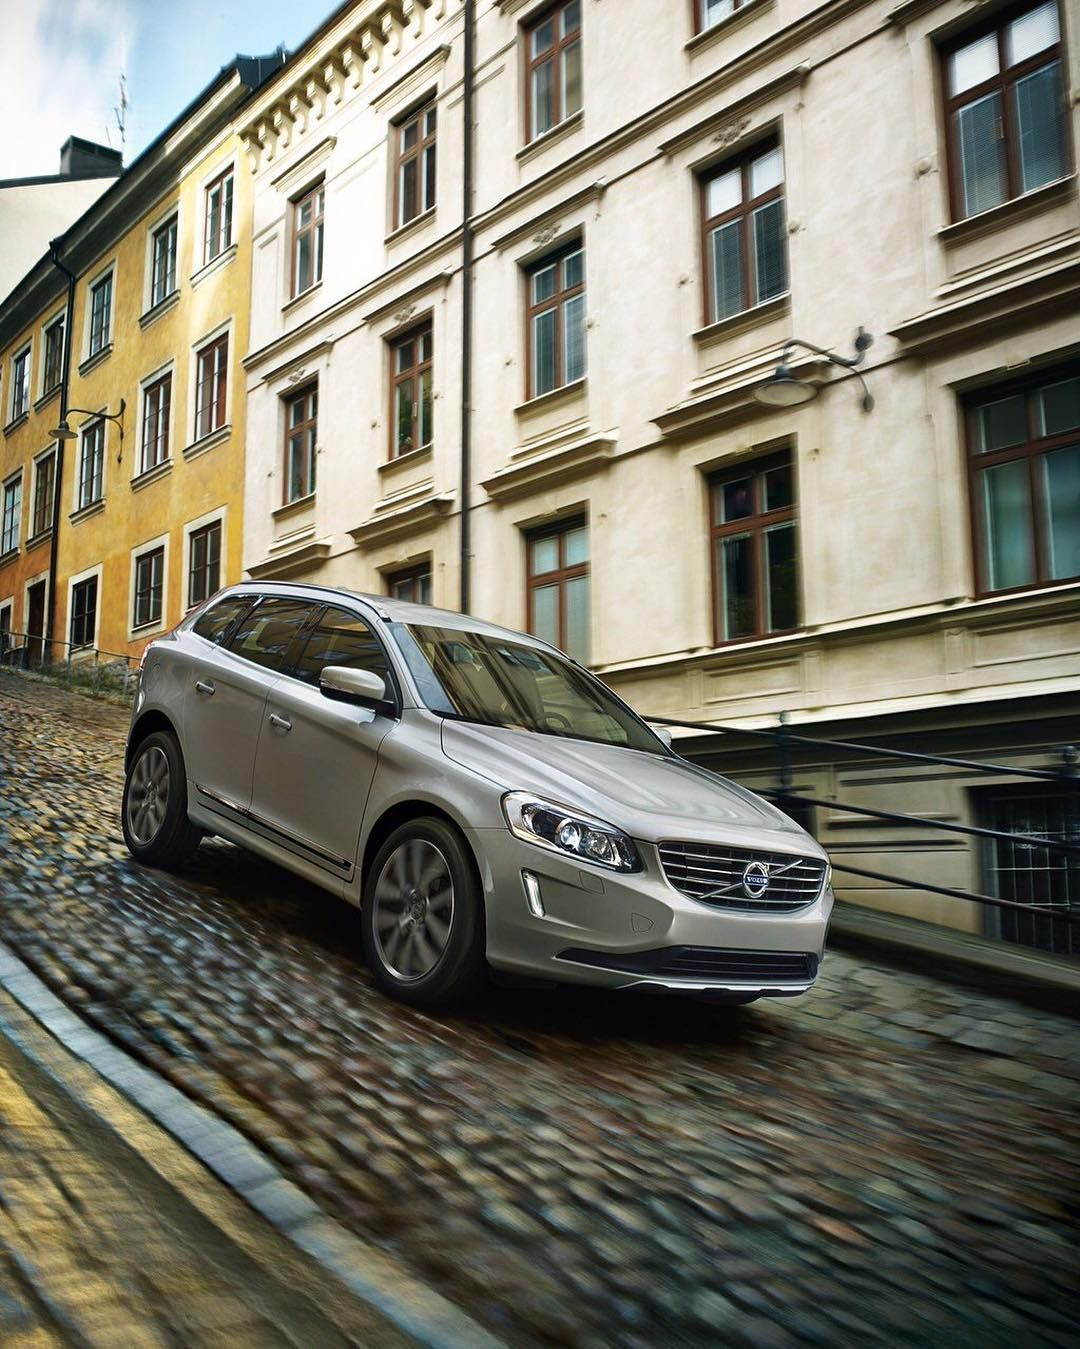 Discover The 60 Reasons You Will Love Driving The Xc60 Link In Profile Bit Ly 60ofxc60 Volvo Xc60 Volvo Volvo Cars